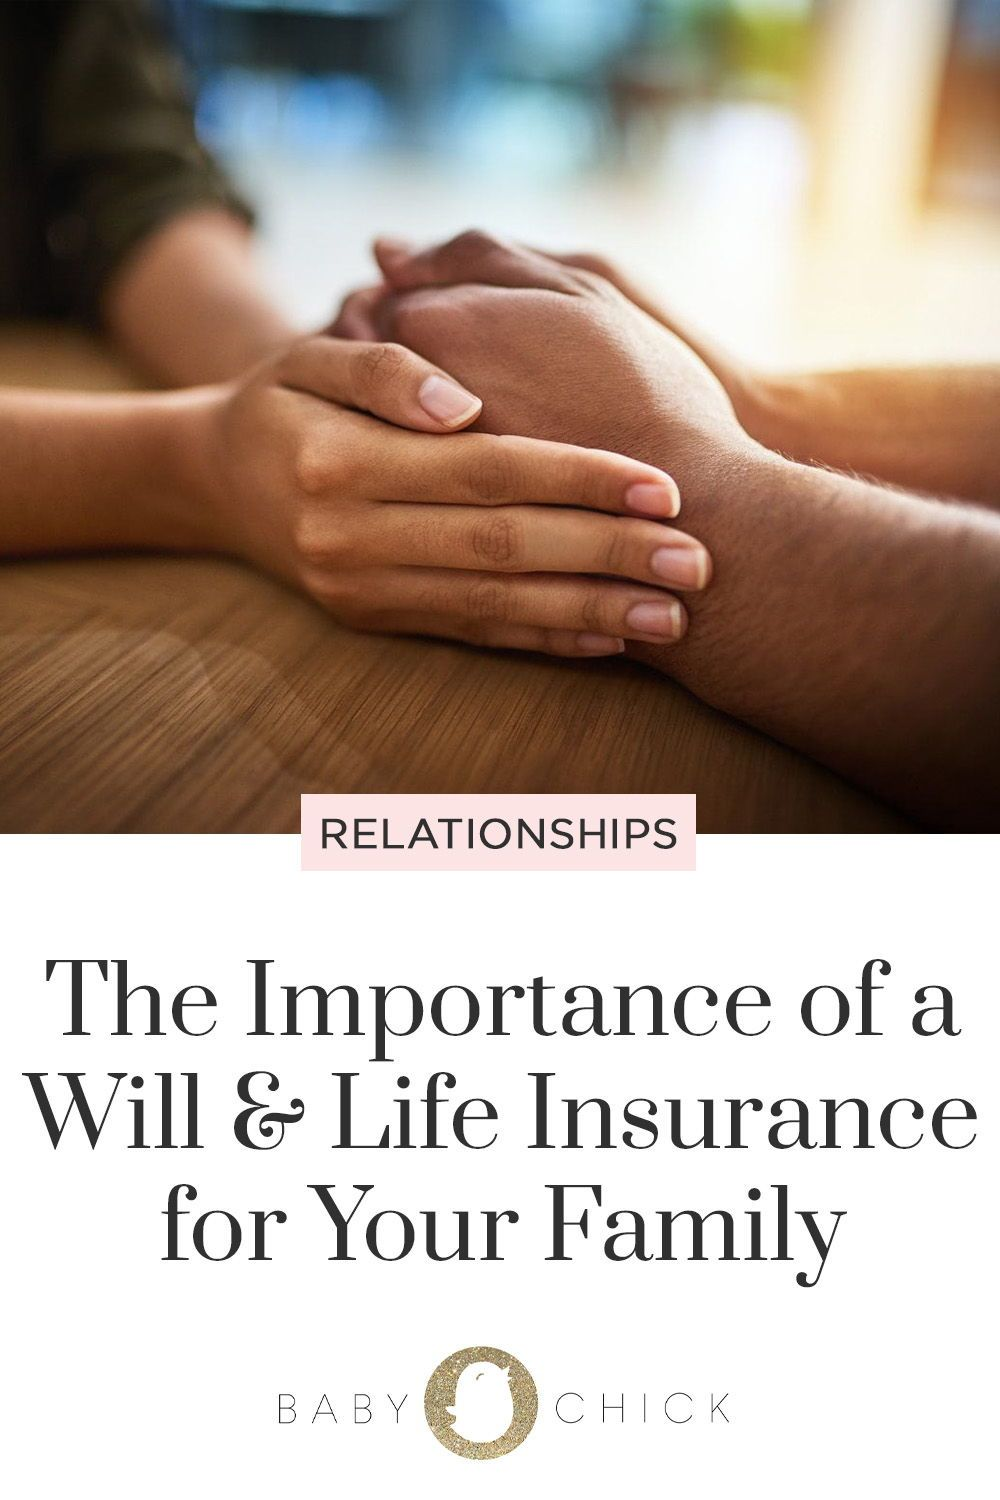 The importance of a will and life insurance for your